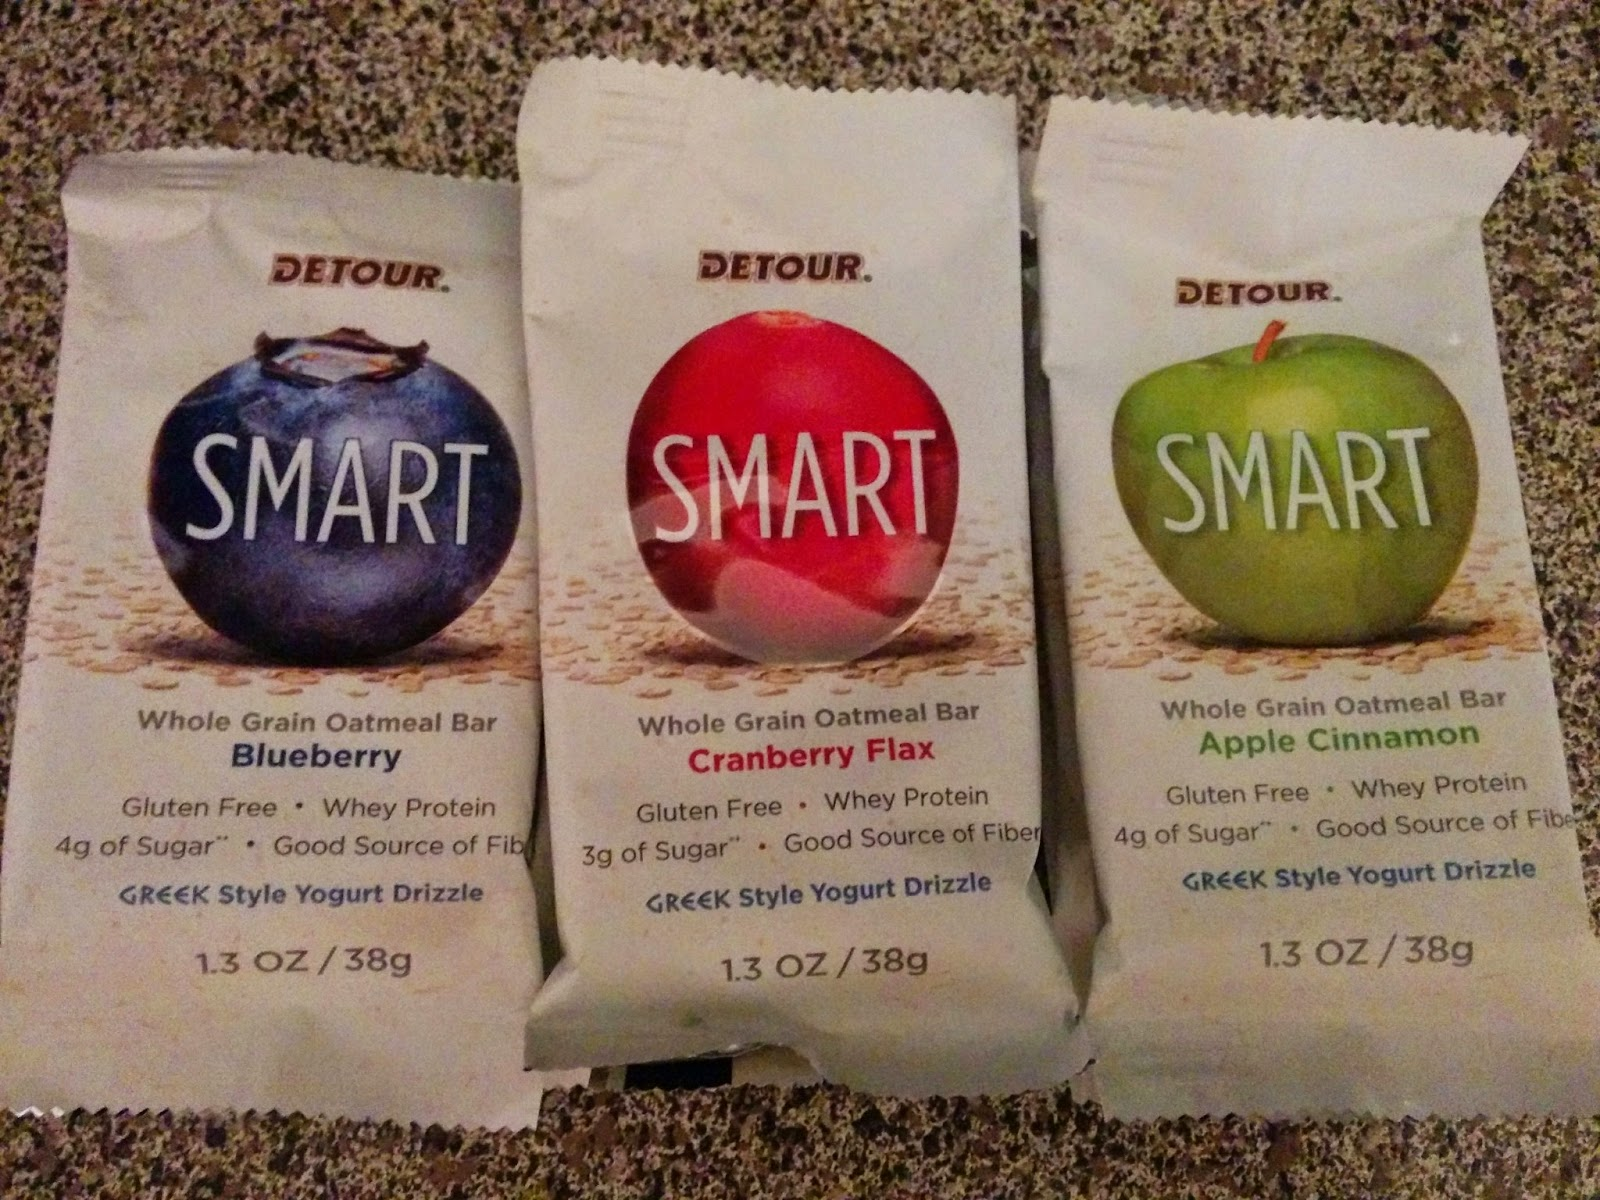 You could win Detour Smart Bars. Join my birthday party today!